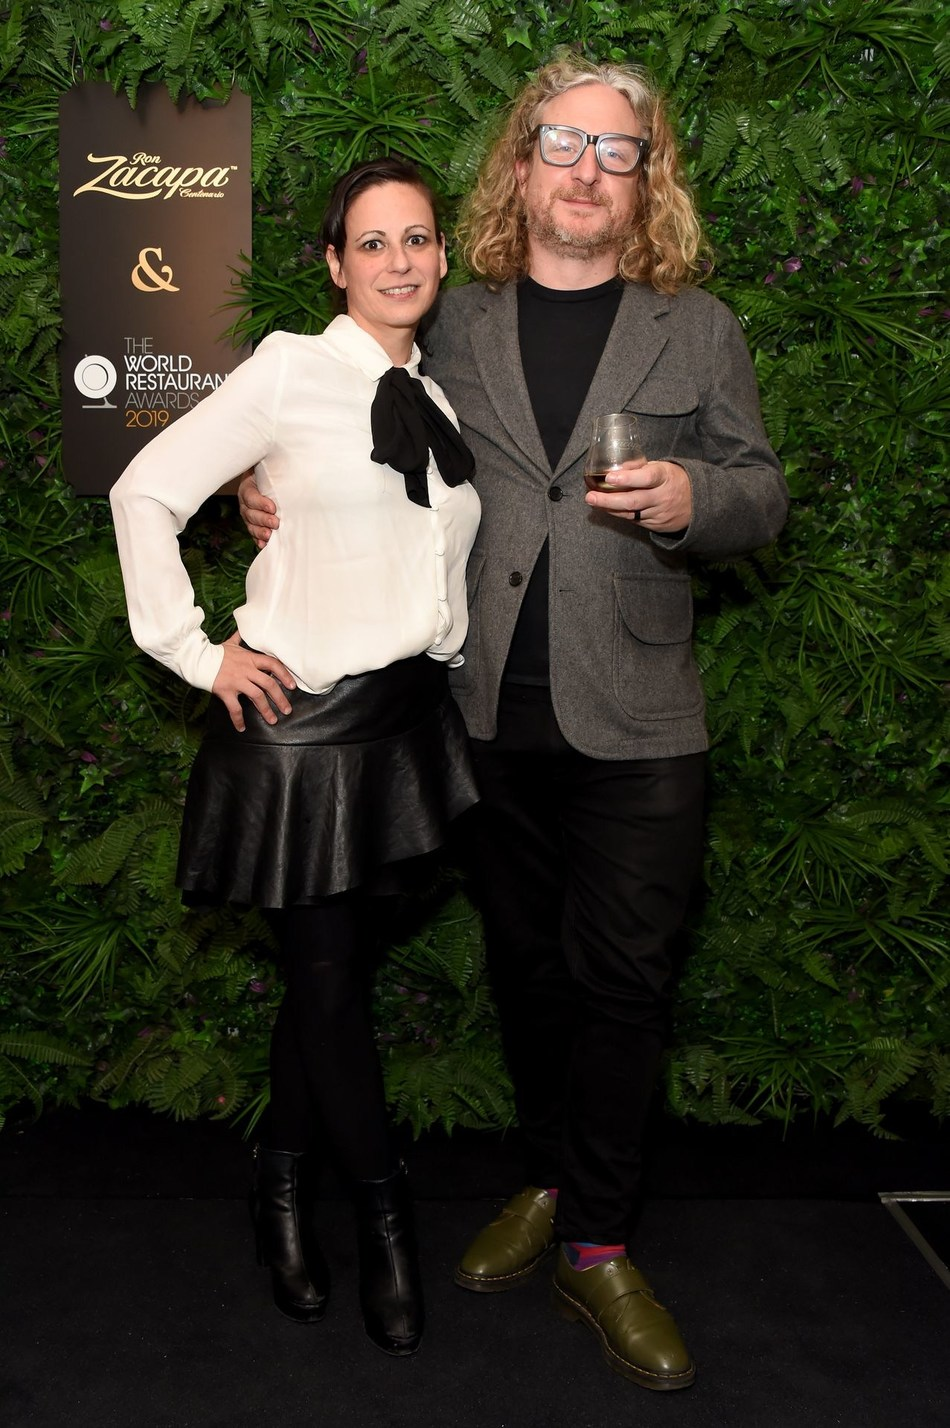 (L-R) Amanda Cohen and Joe Warwick attend the official Ron Zacapa rum opening event of The World Restaurant Awards 2019 at Malro on February 17th, 2019 in Paris, France. The exclusive event is ahead of the inaugural edition of The World Restaurant Awards being held at the Palais Brongniart on February 18th. (Photo by David M. Benett/Dave Benett/Getty Images for Zacapa Rum)